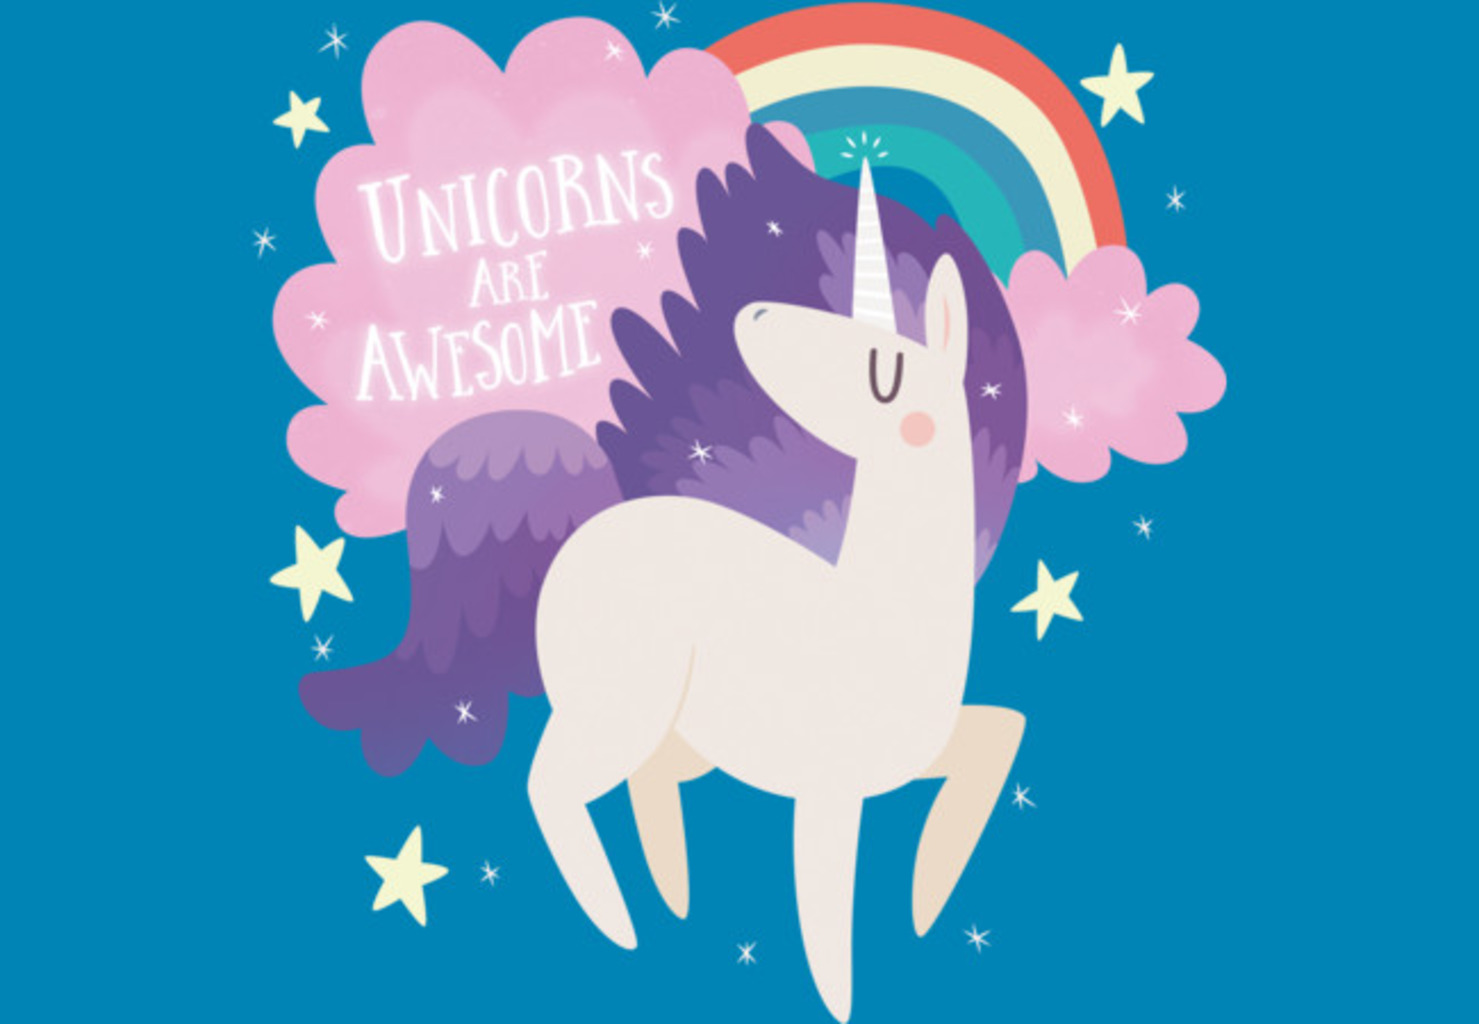 Design by Humans: UNICORNS ARE AWESOME